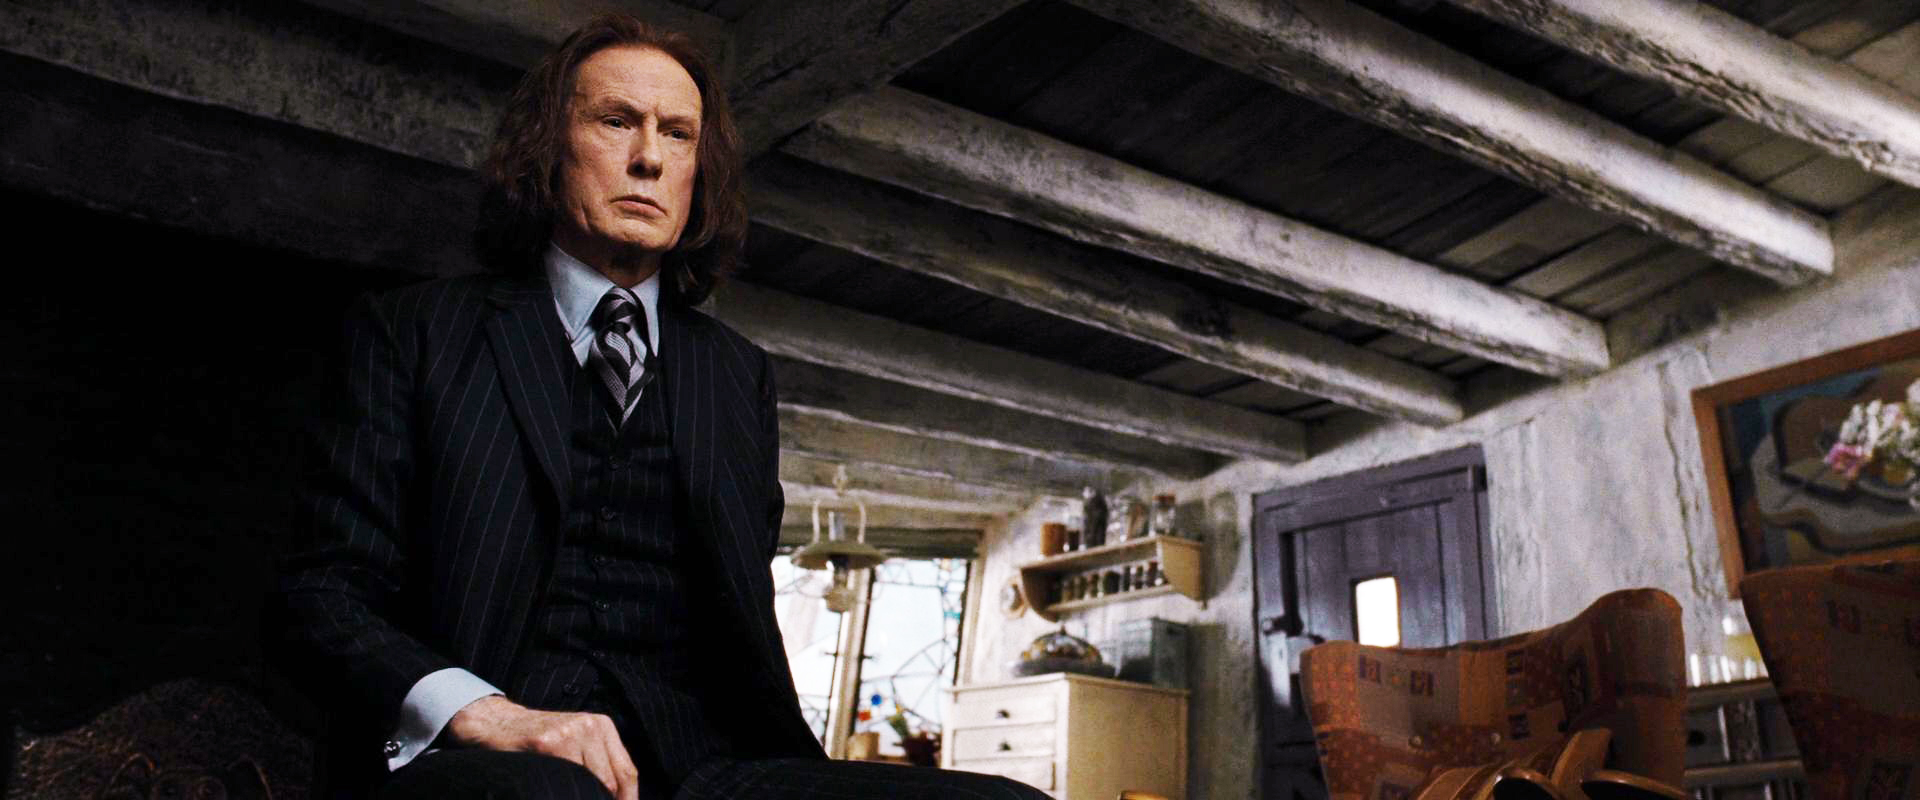 DH1 Minister for Magic, Rufus Scrimgeour.jpg